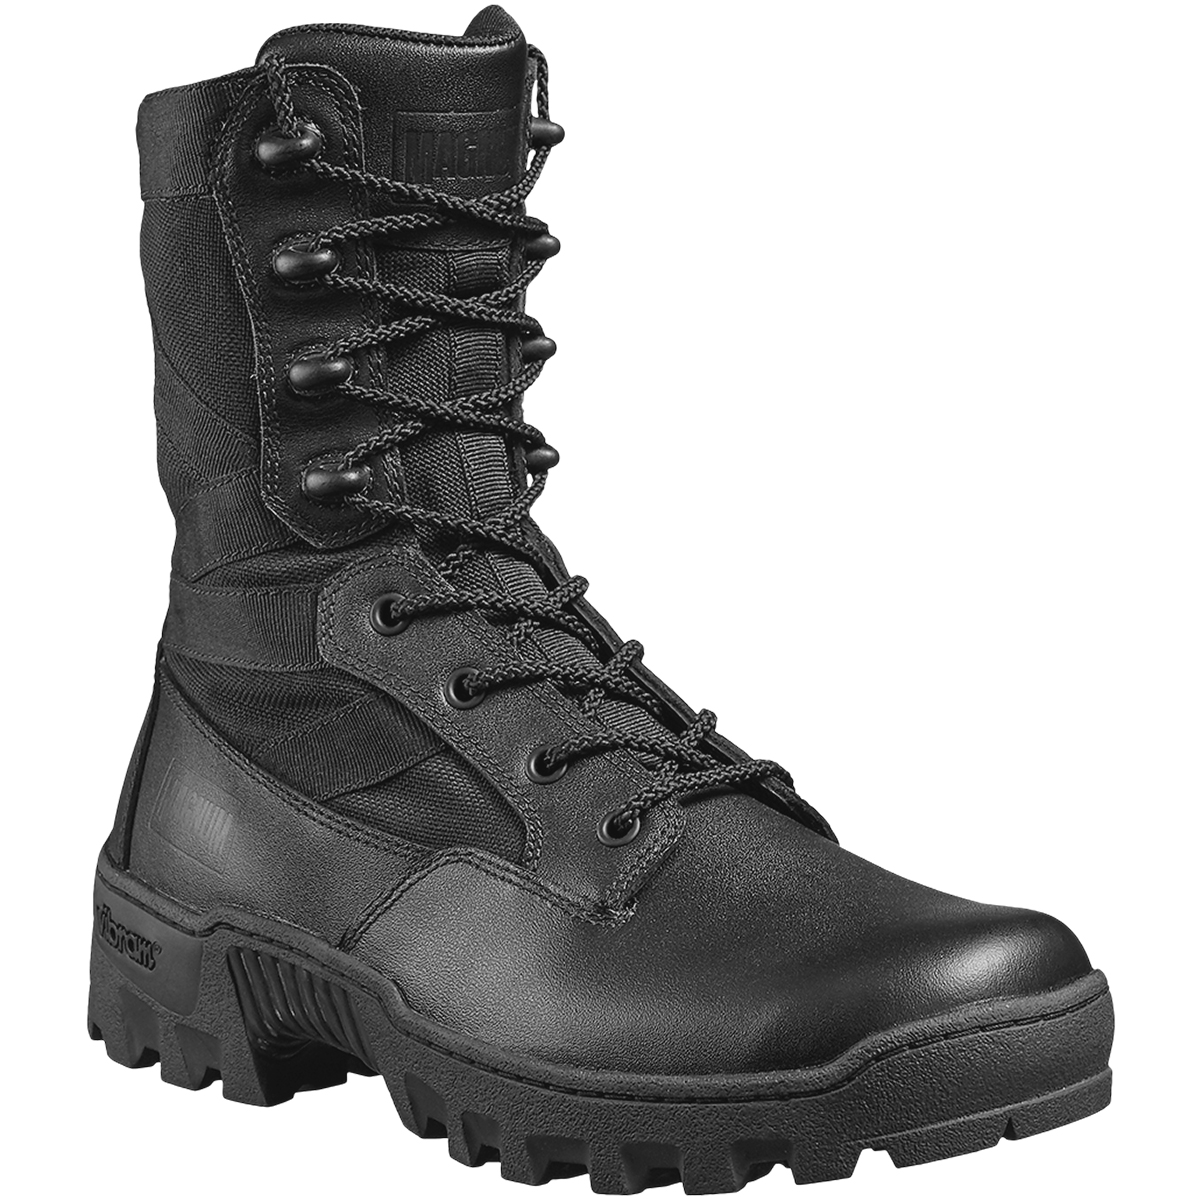 Black Boots Sale: Save Up to 80% Off! Shop ragabjv.gq's huge selection of Black Boots - Over 4, styles available. FREE Shipping & Exchanges, and a % price guarantee!